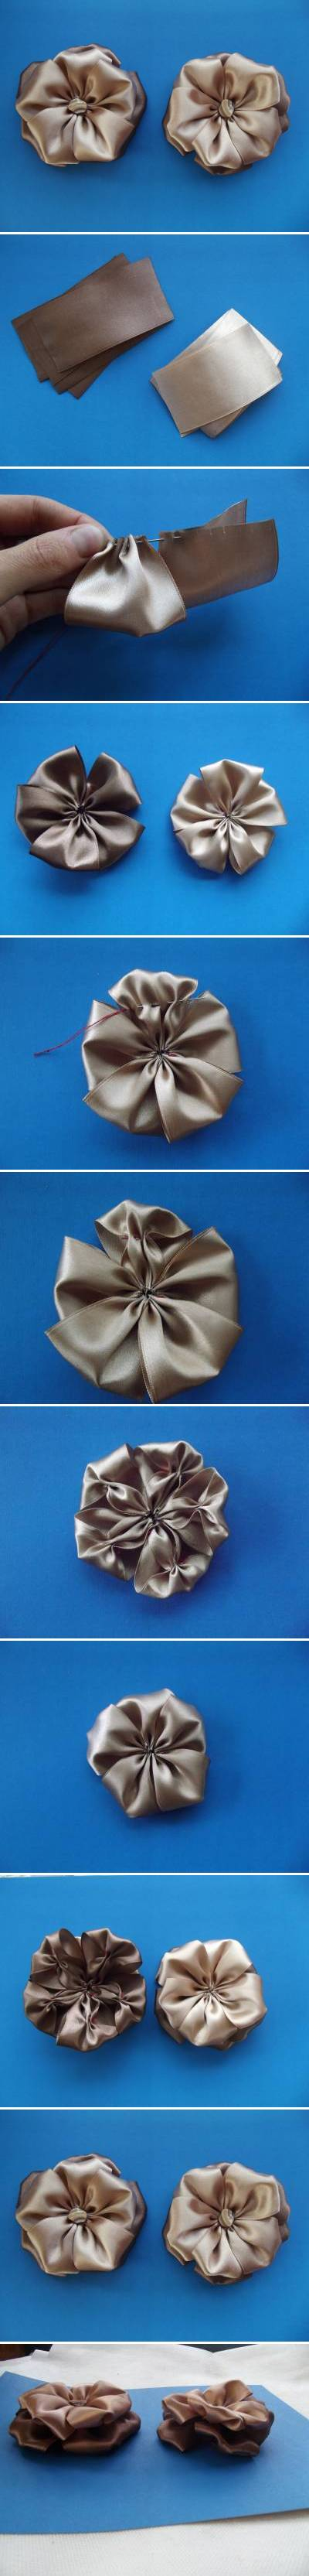 How to make Original Bow step by step DIY tutorial instructions